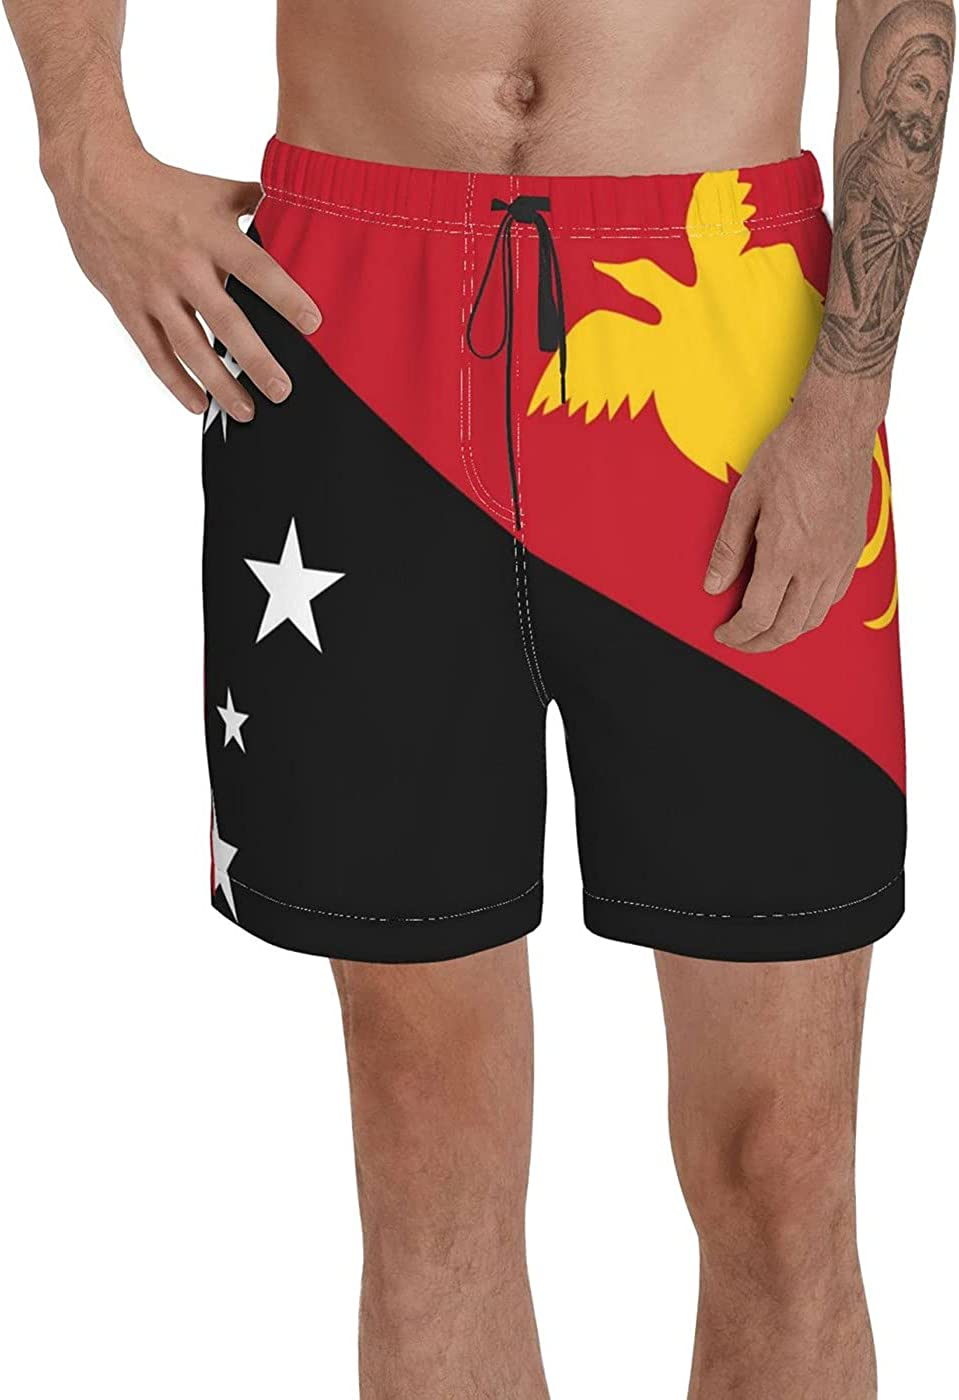 Count Papua New Guinea Flag Men's 3D Printed Funny Summer Quick Dry Swim Short Board Shorts with